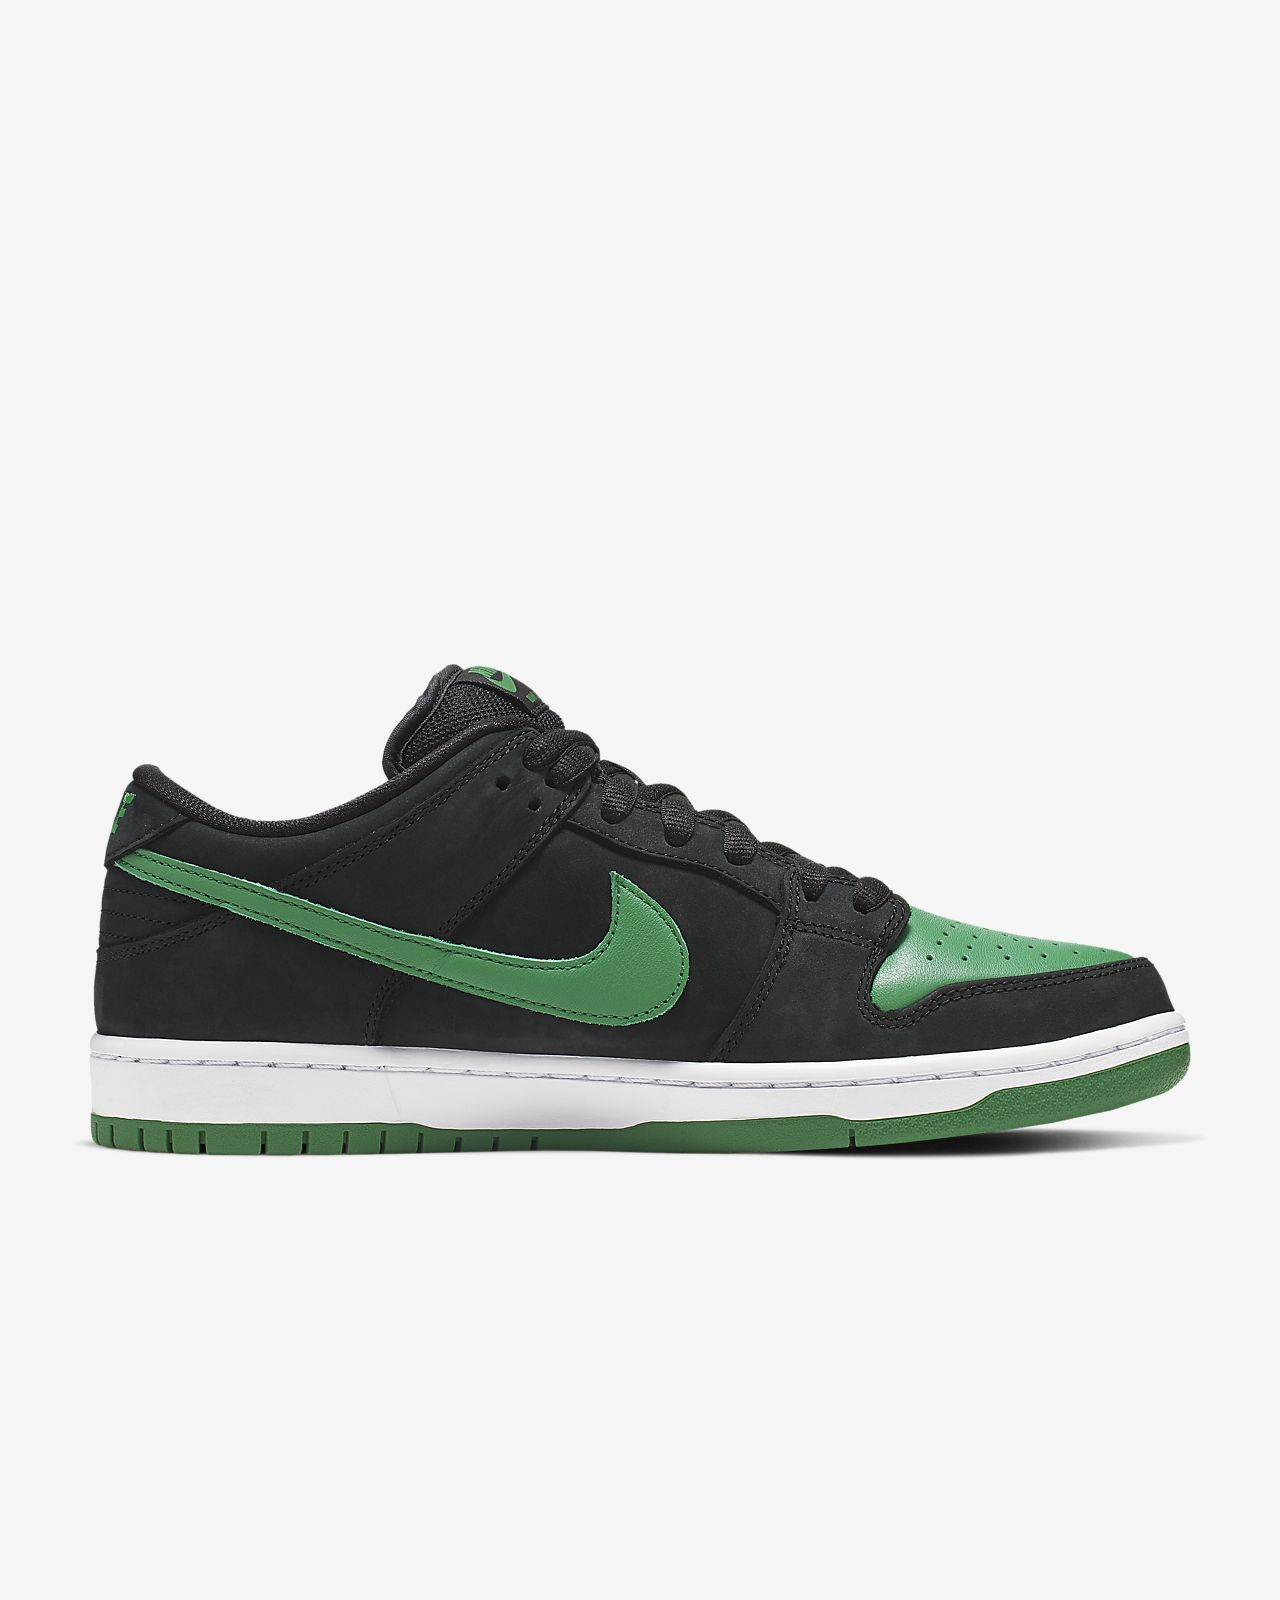 wholesale sales coupon code best sale low price nike dunks vert fb053 4c720